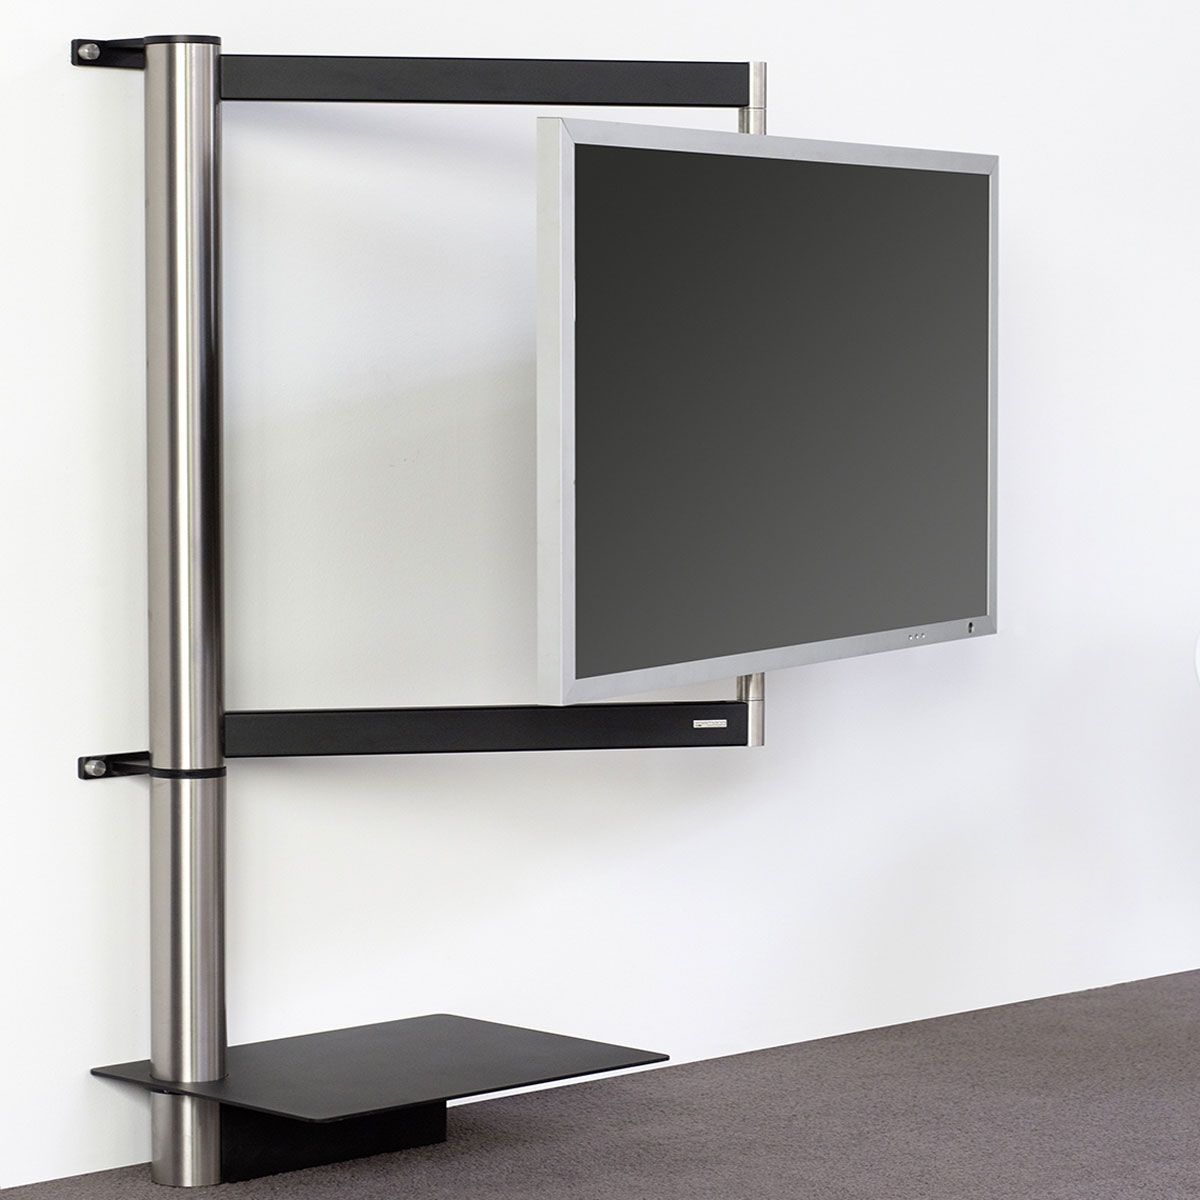 tv wandhalter fernsehhalter schwenkbar rack schwenkarm tv in 2019. Black Bedroom Furniture Sets. Home Design Ideas